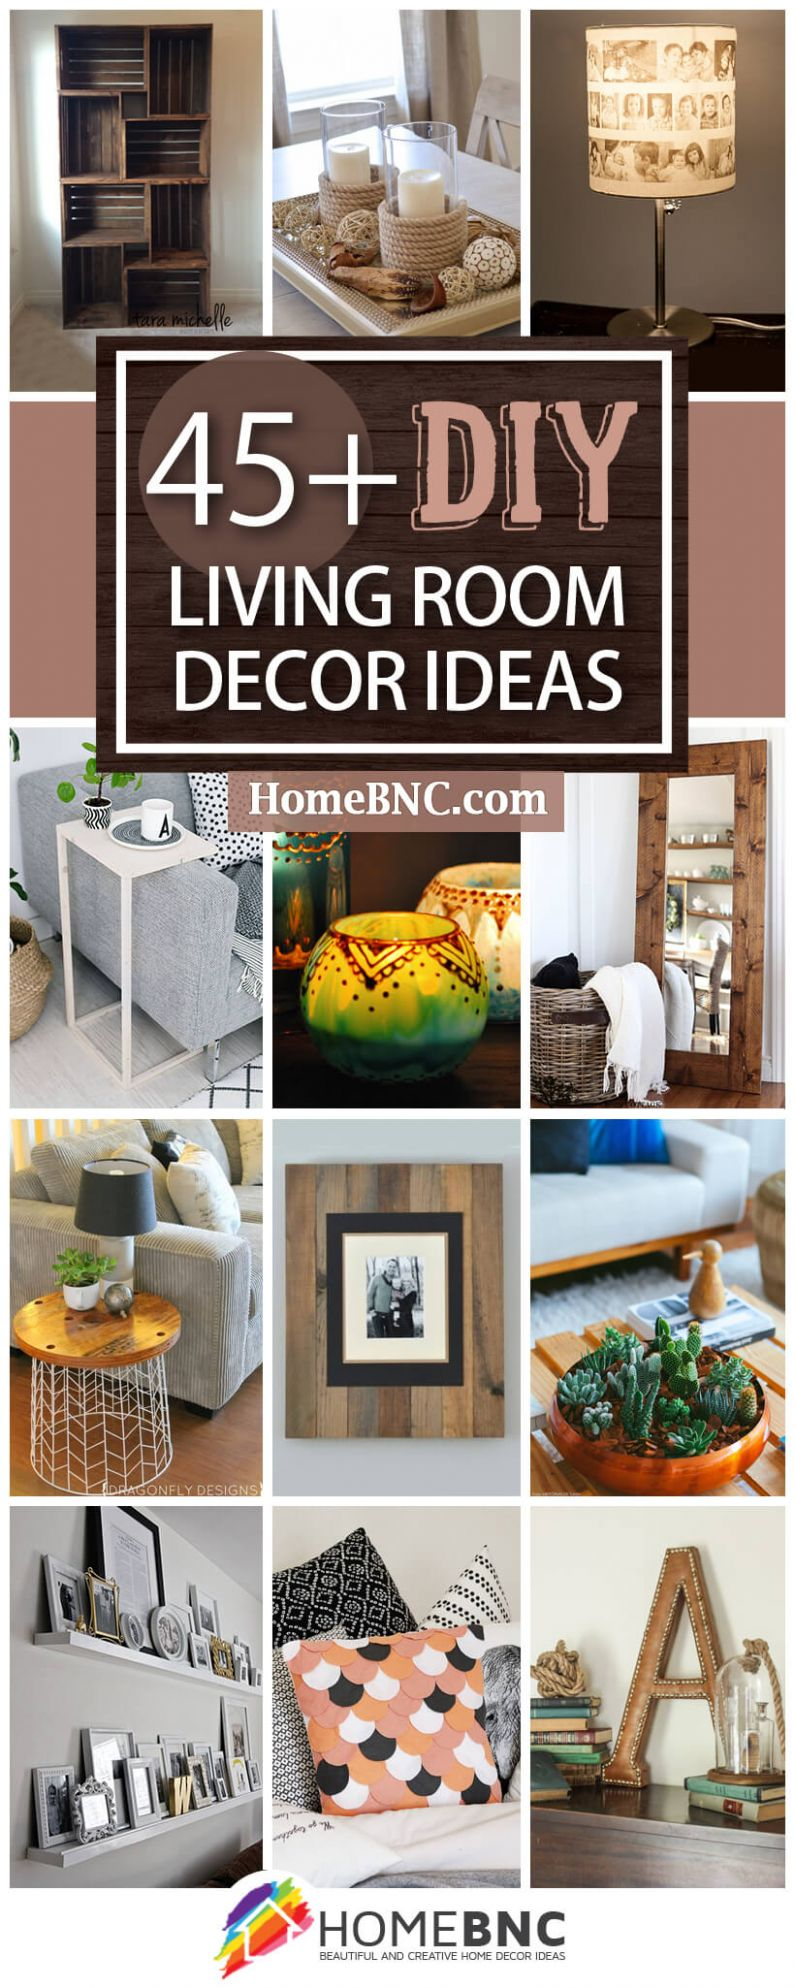 10+ Best DIY Living Room Decorating Ideas and Designs for 10 - diy home decor ideas easy and cheap